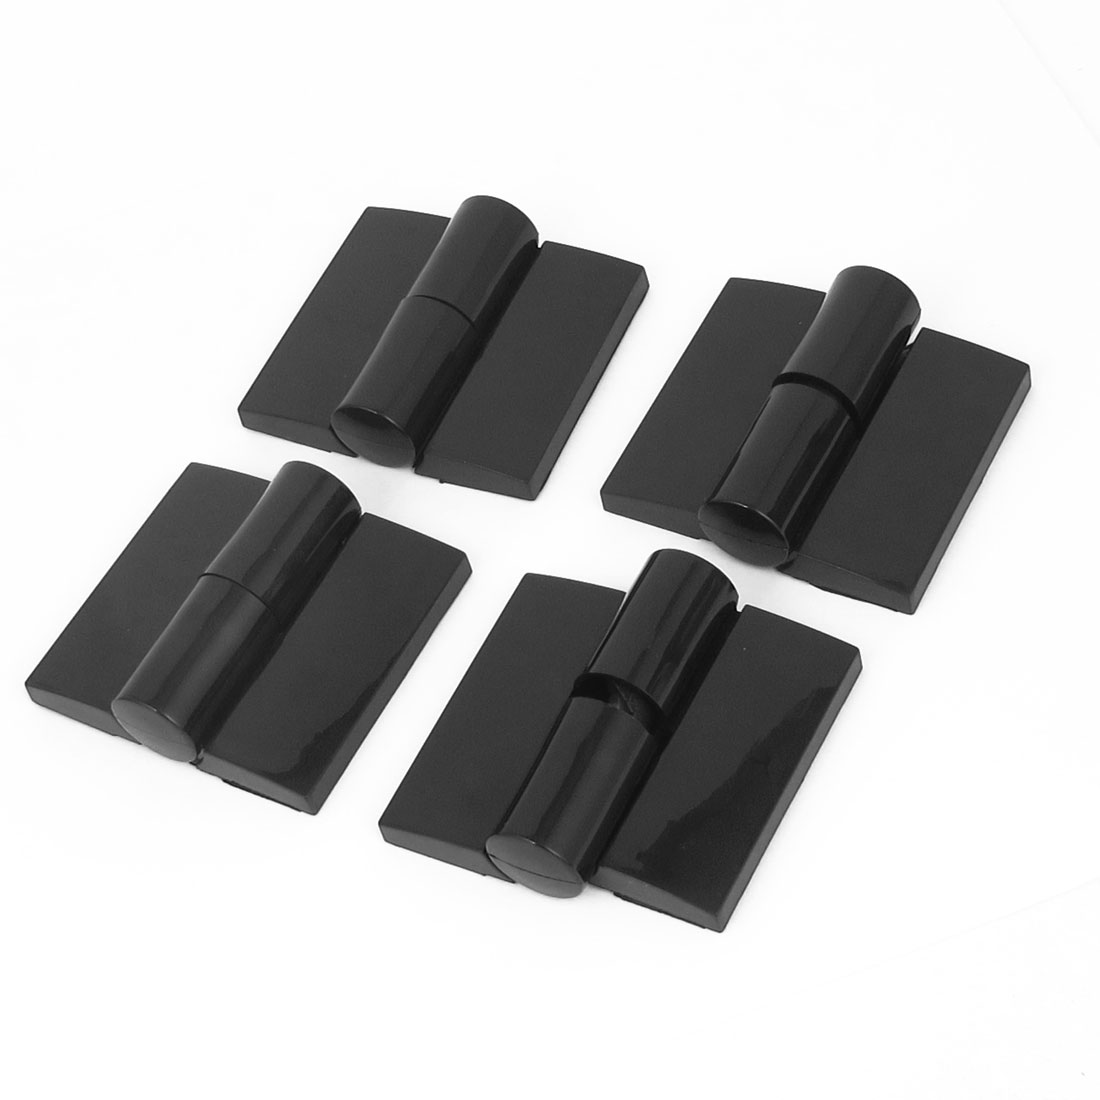 "4pcs Cupboard Cabinet Closet Plastic Foldable Door Butt Hinge Black 3"" Long"